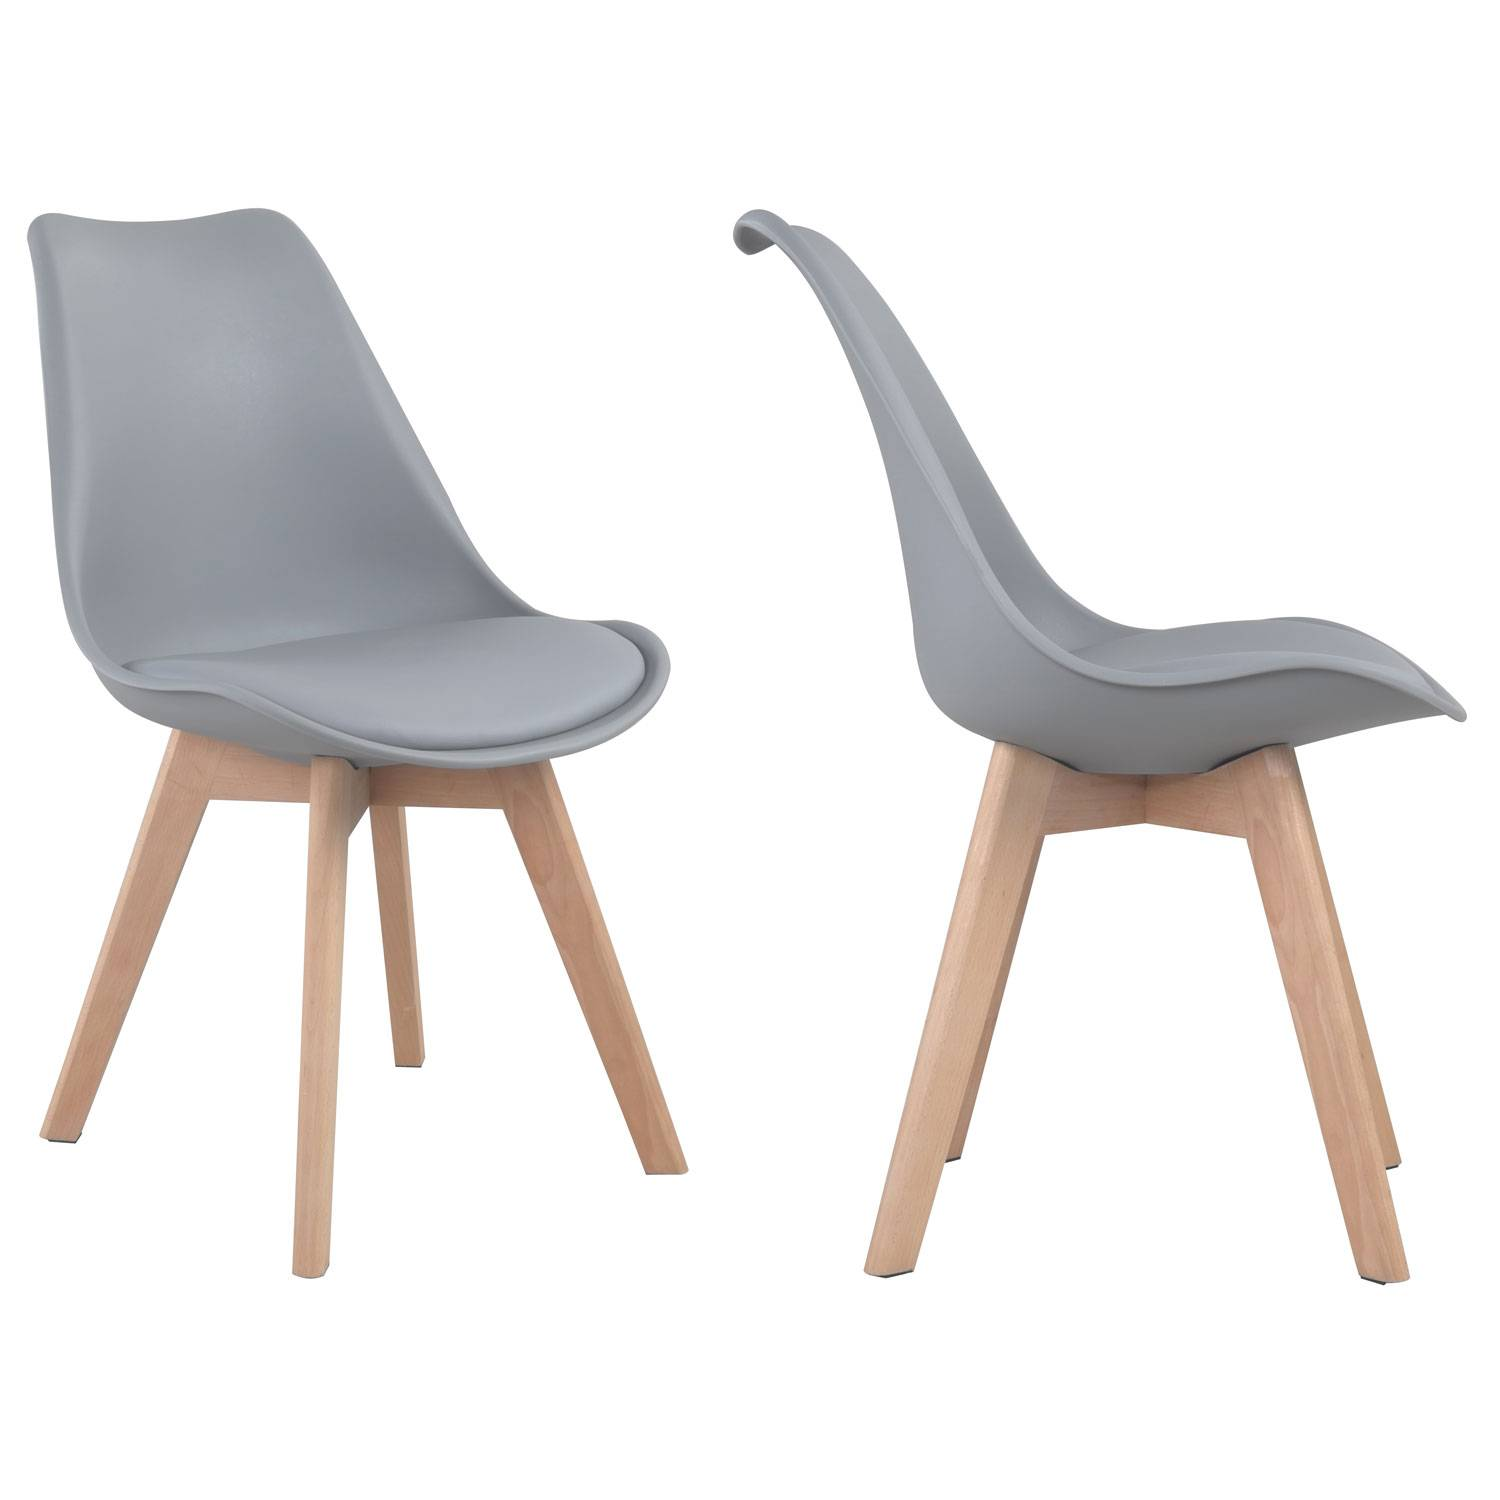 Chaise Scandinave Coque Grise Chaises Scandinaves Nora Grises